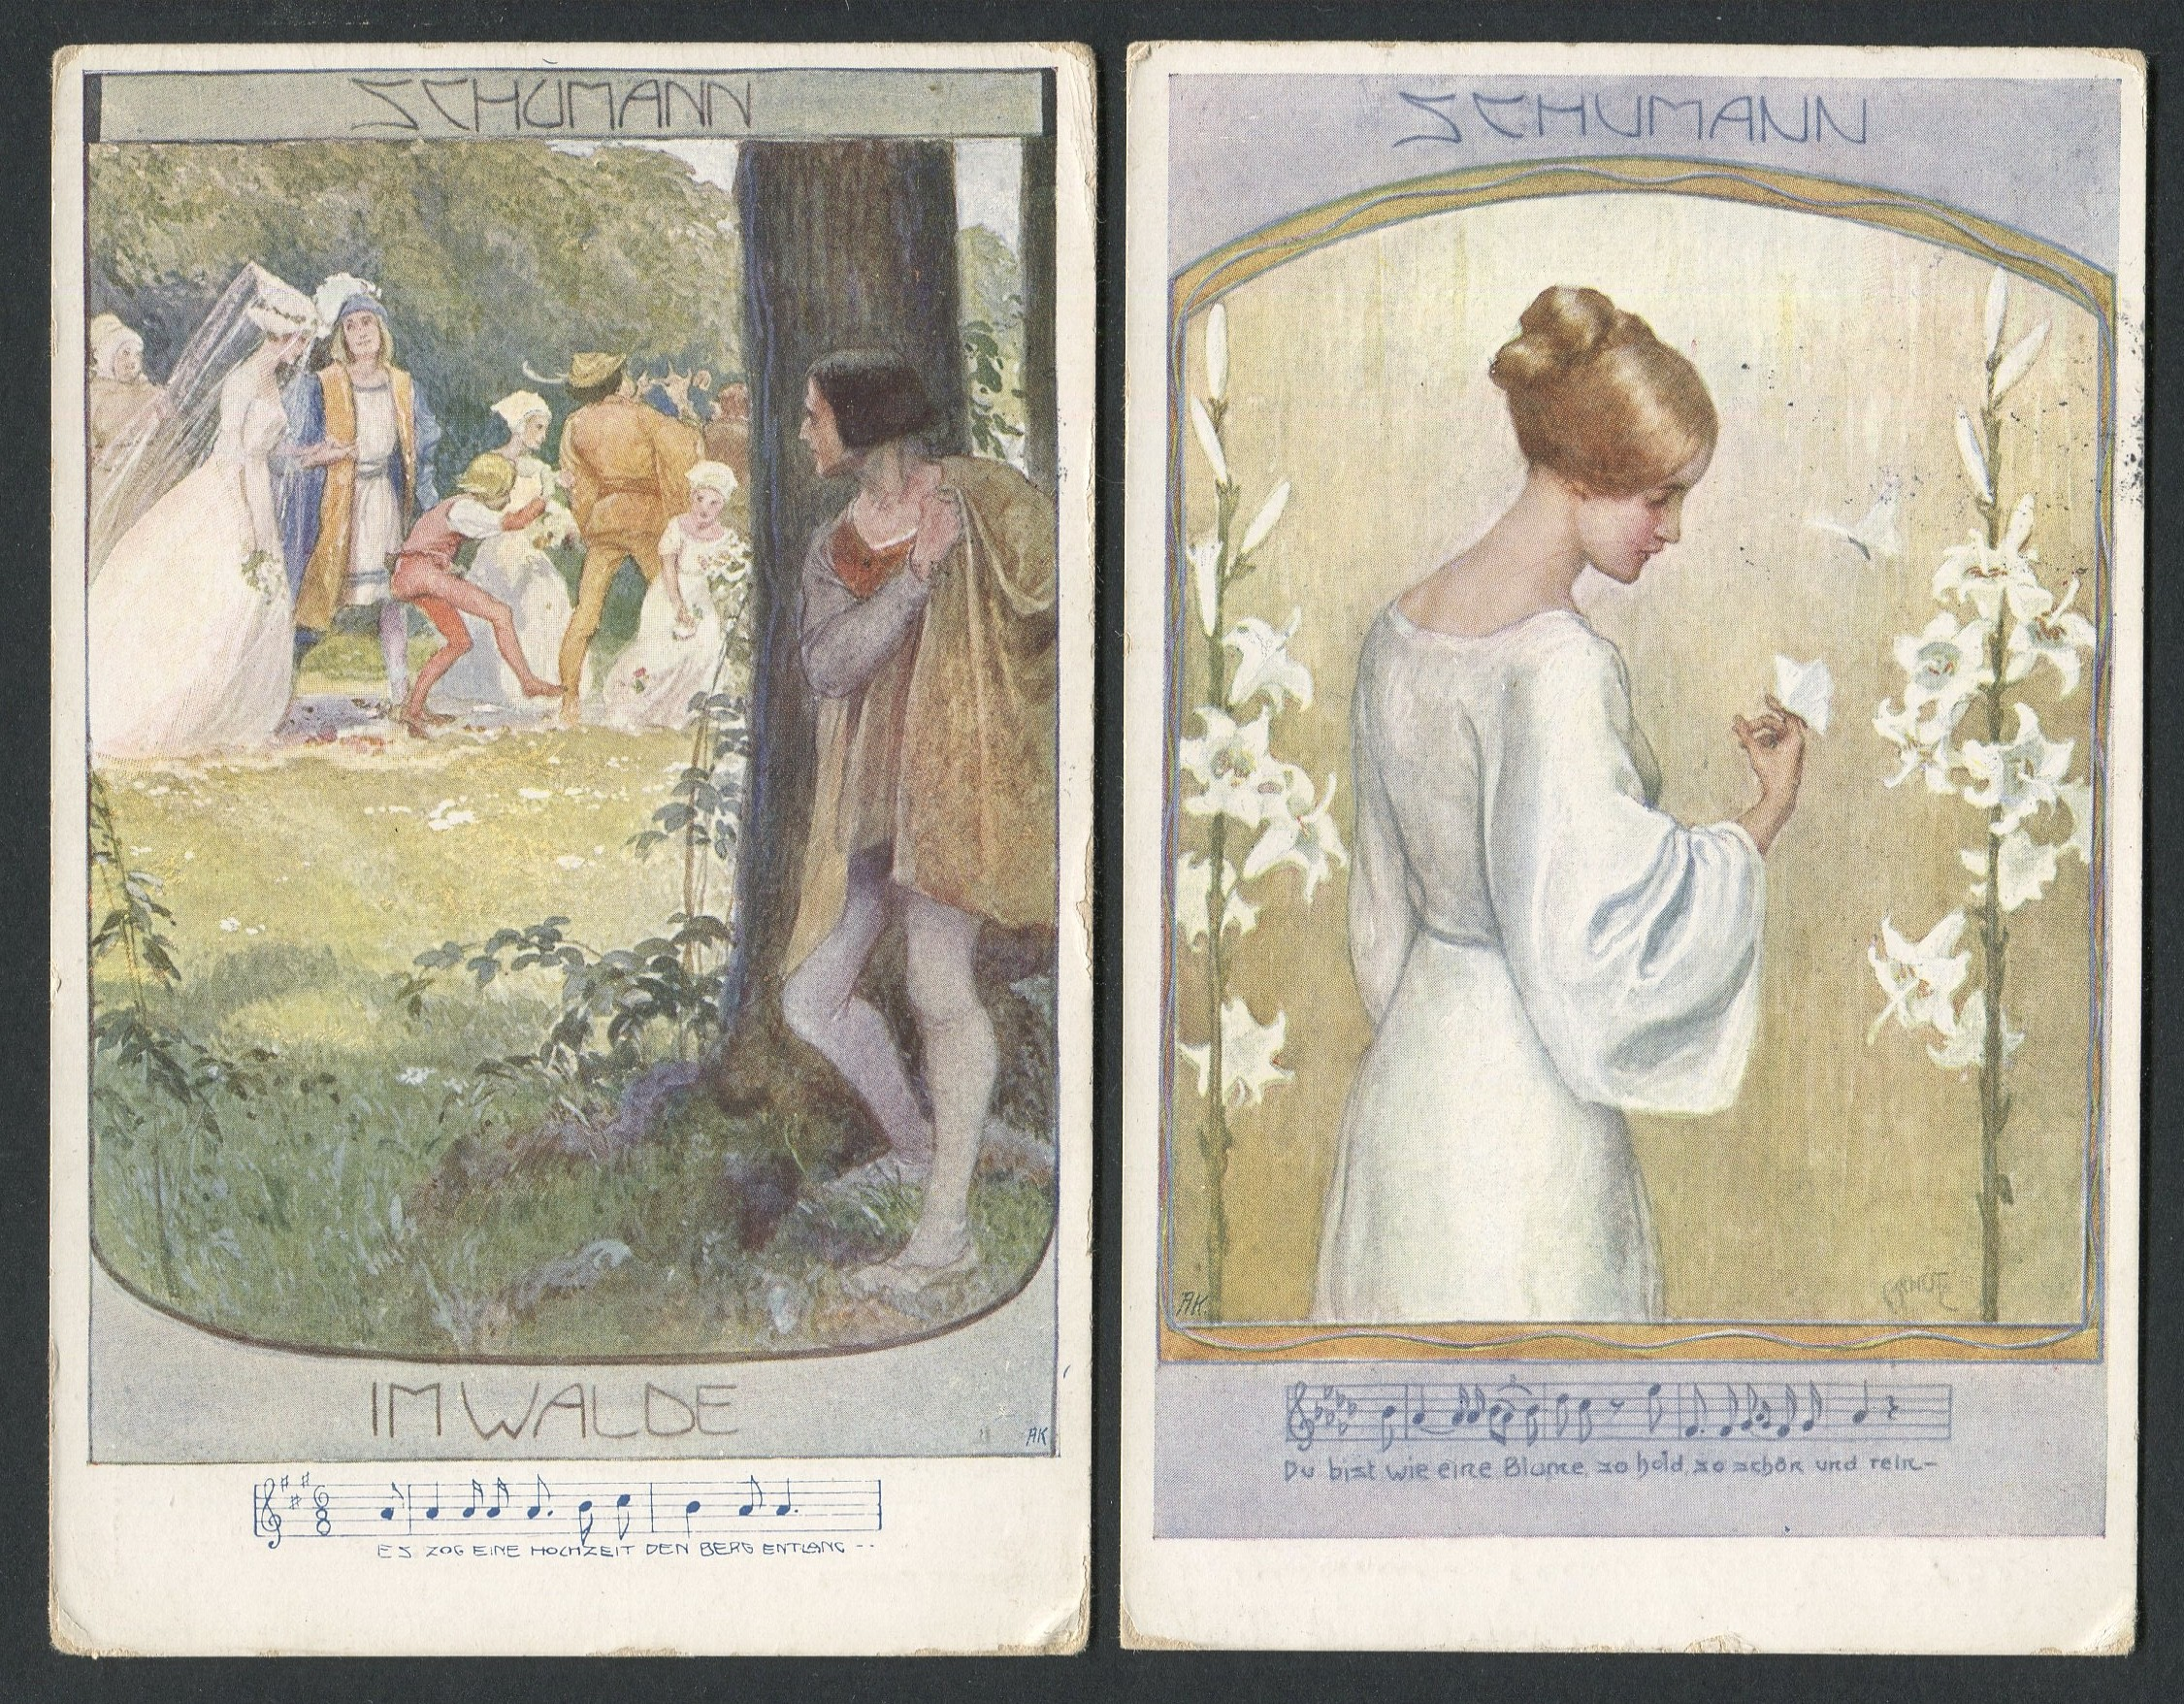 Lot 76 - TWO MUSIC / SONG SCHUMANN POST CARDS